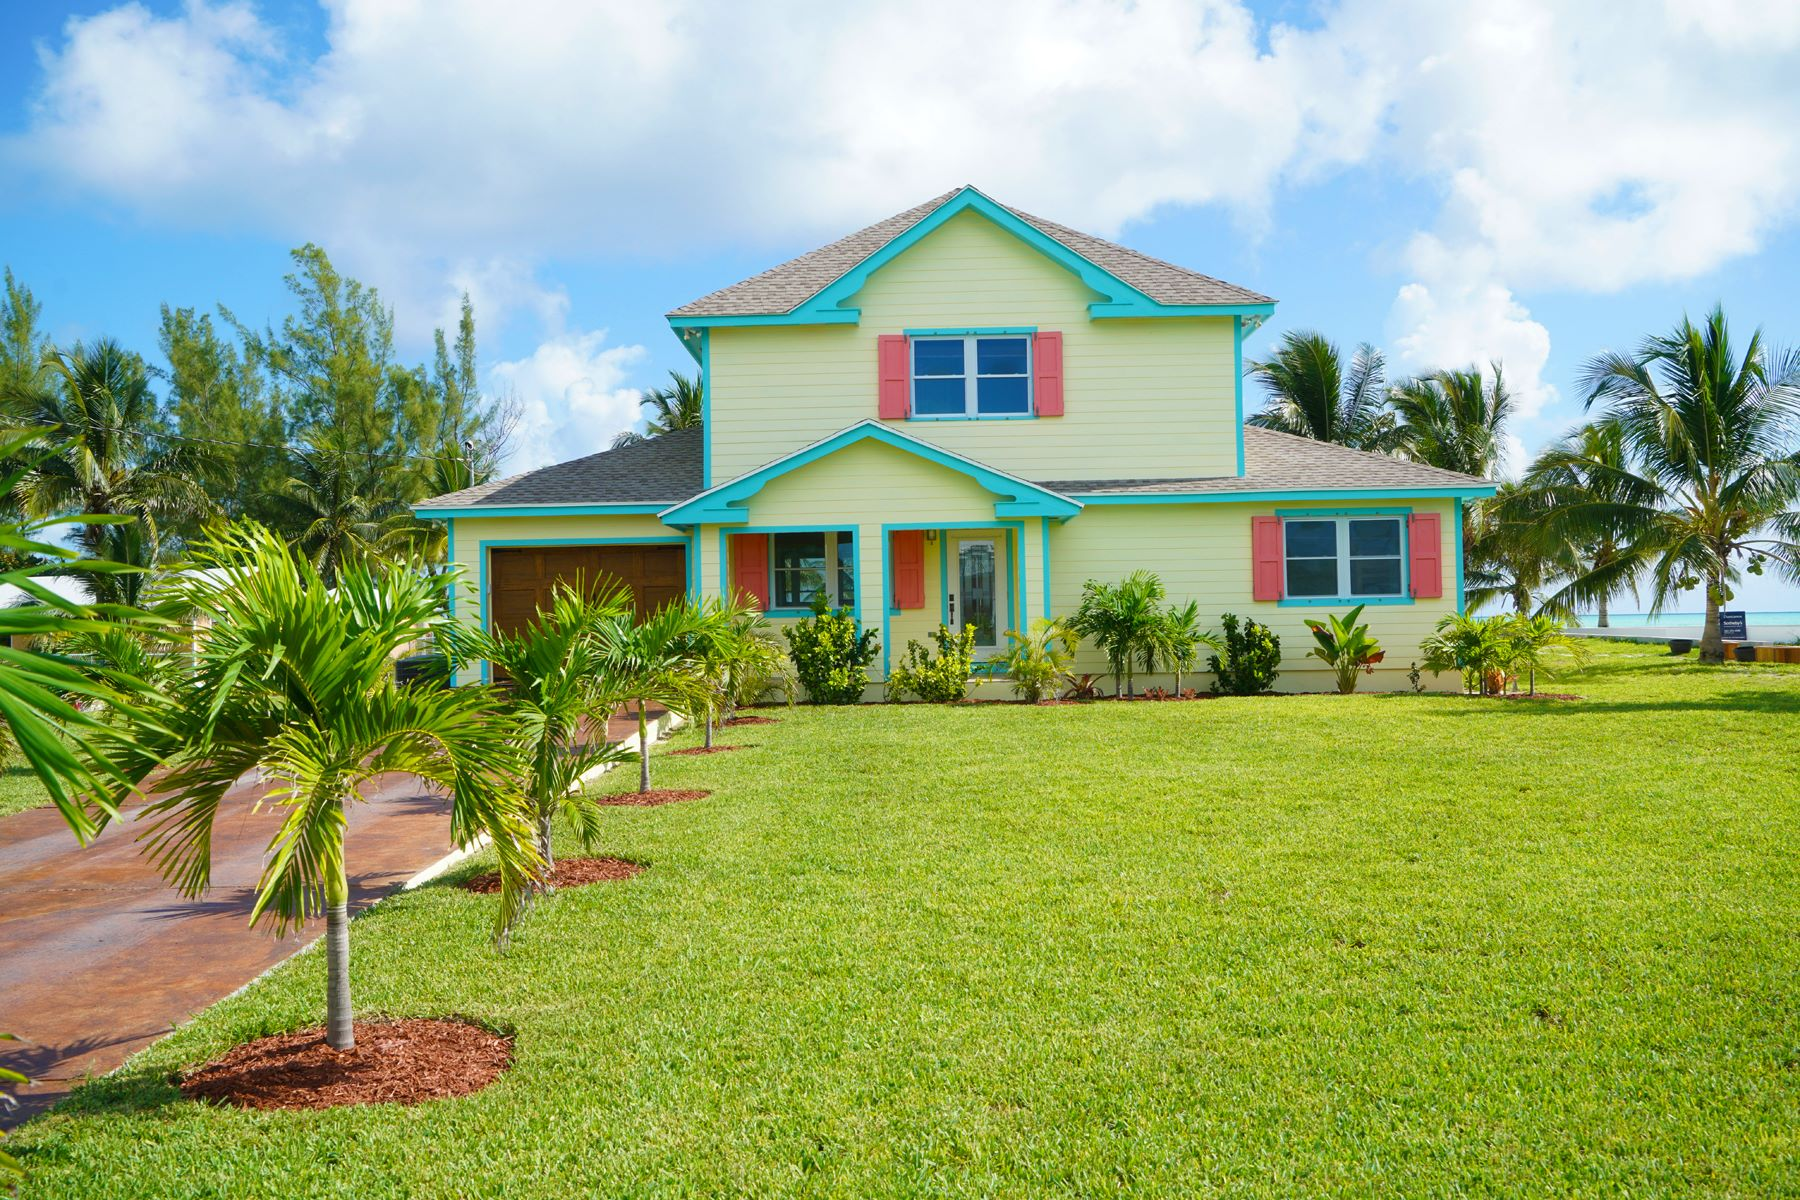 Vivienda unifamiliar por un Venta en Seas the Day - Beachfront Spanish Wells, Eleuthera Bahamas